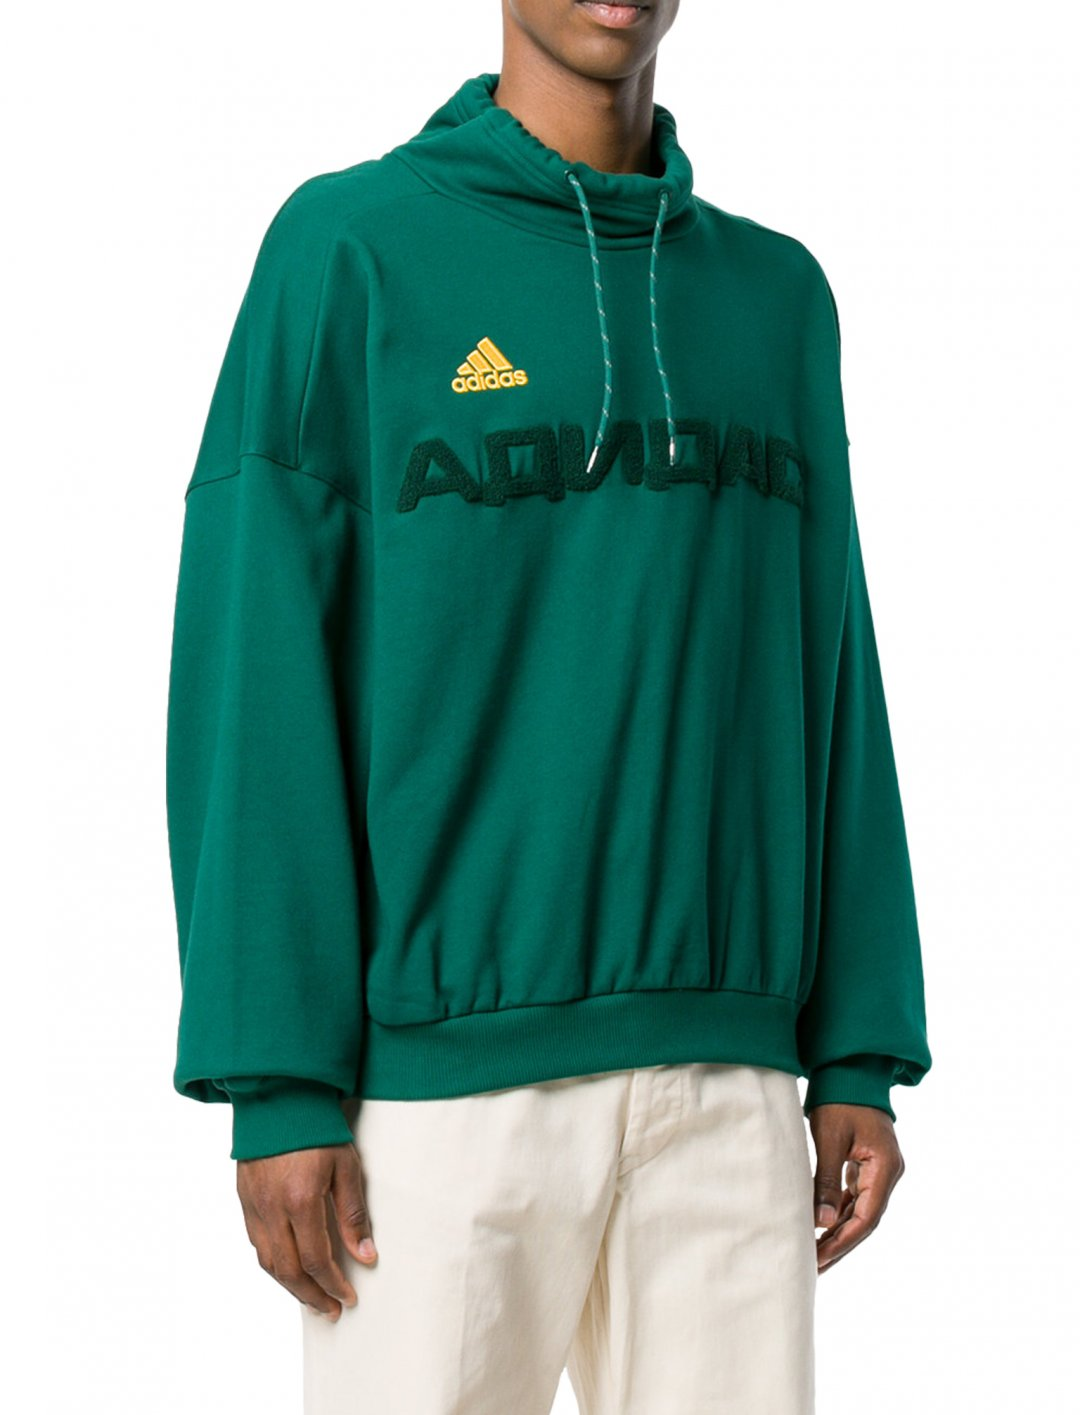 "Buddy's Adidas Sweat Top {""id"":5,""product_section_id"":1,""name"":""Clothing"",""order"":5} Gosha Rubchinskiy"